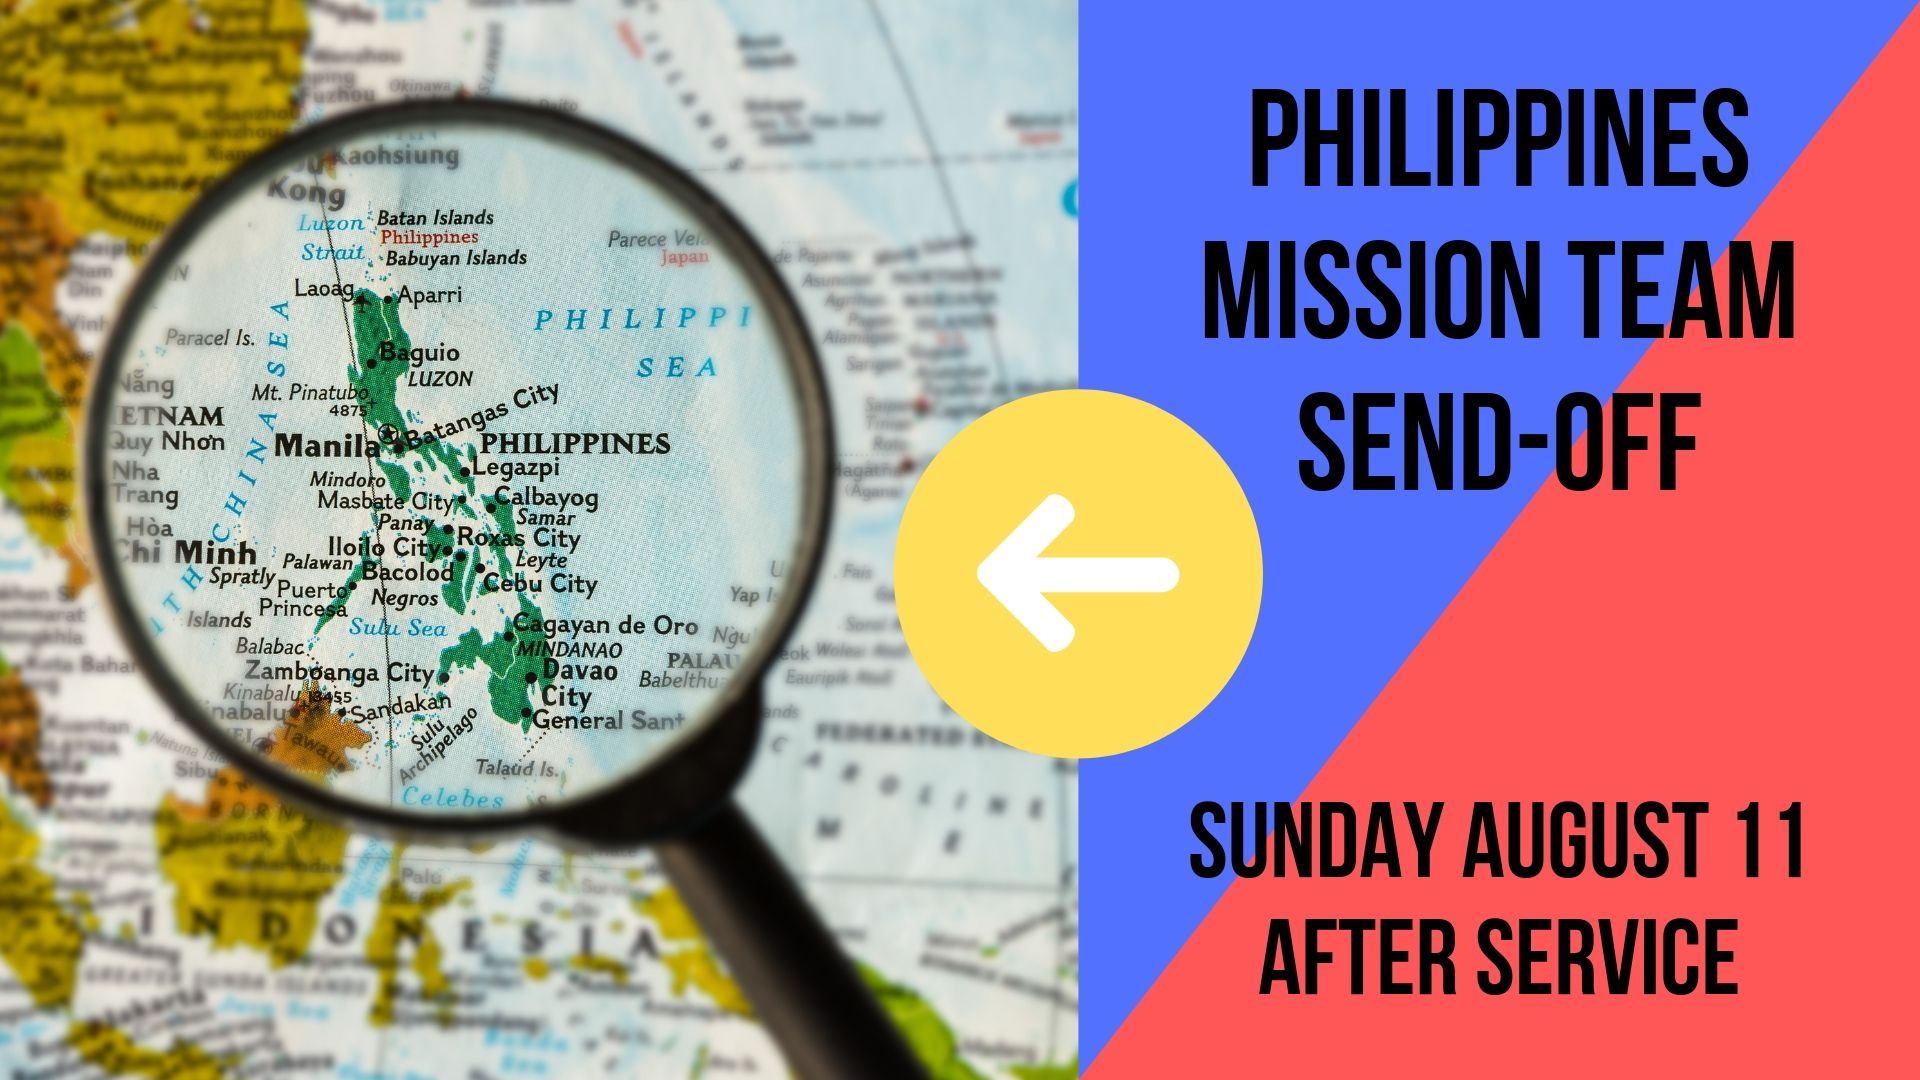 Join us at Rainier Valley Church directly after service on Sunday, August 11th to support the Philippines Missionary Team. We will be praying over the team and their trip to Cebu to serve our ministry partners GCE (Grace Community Empowerment).